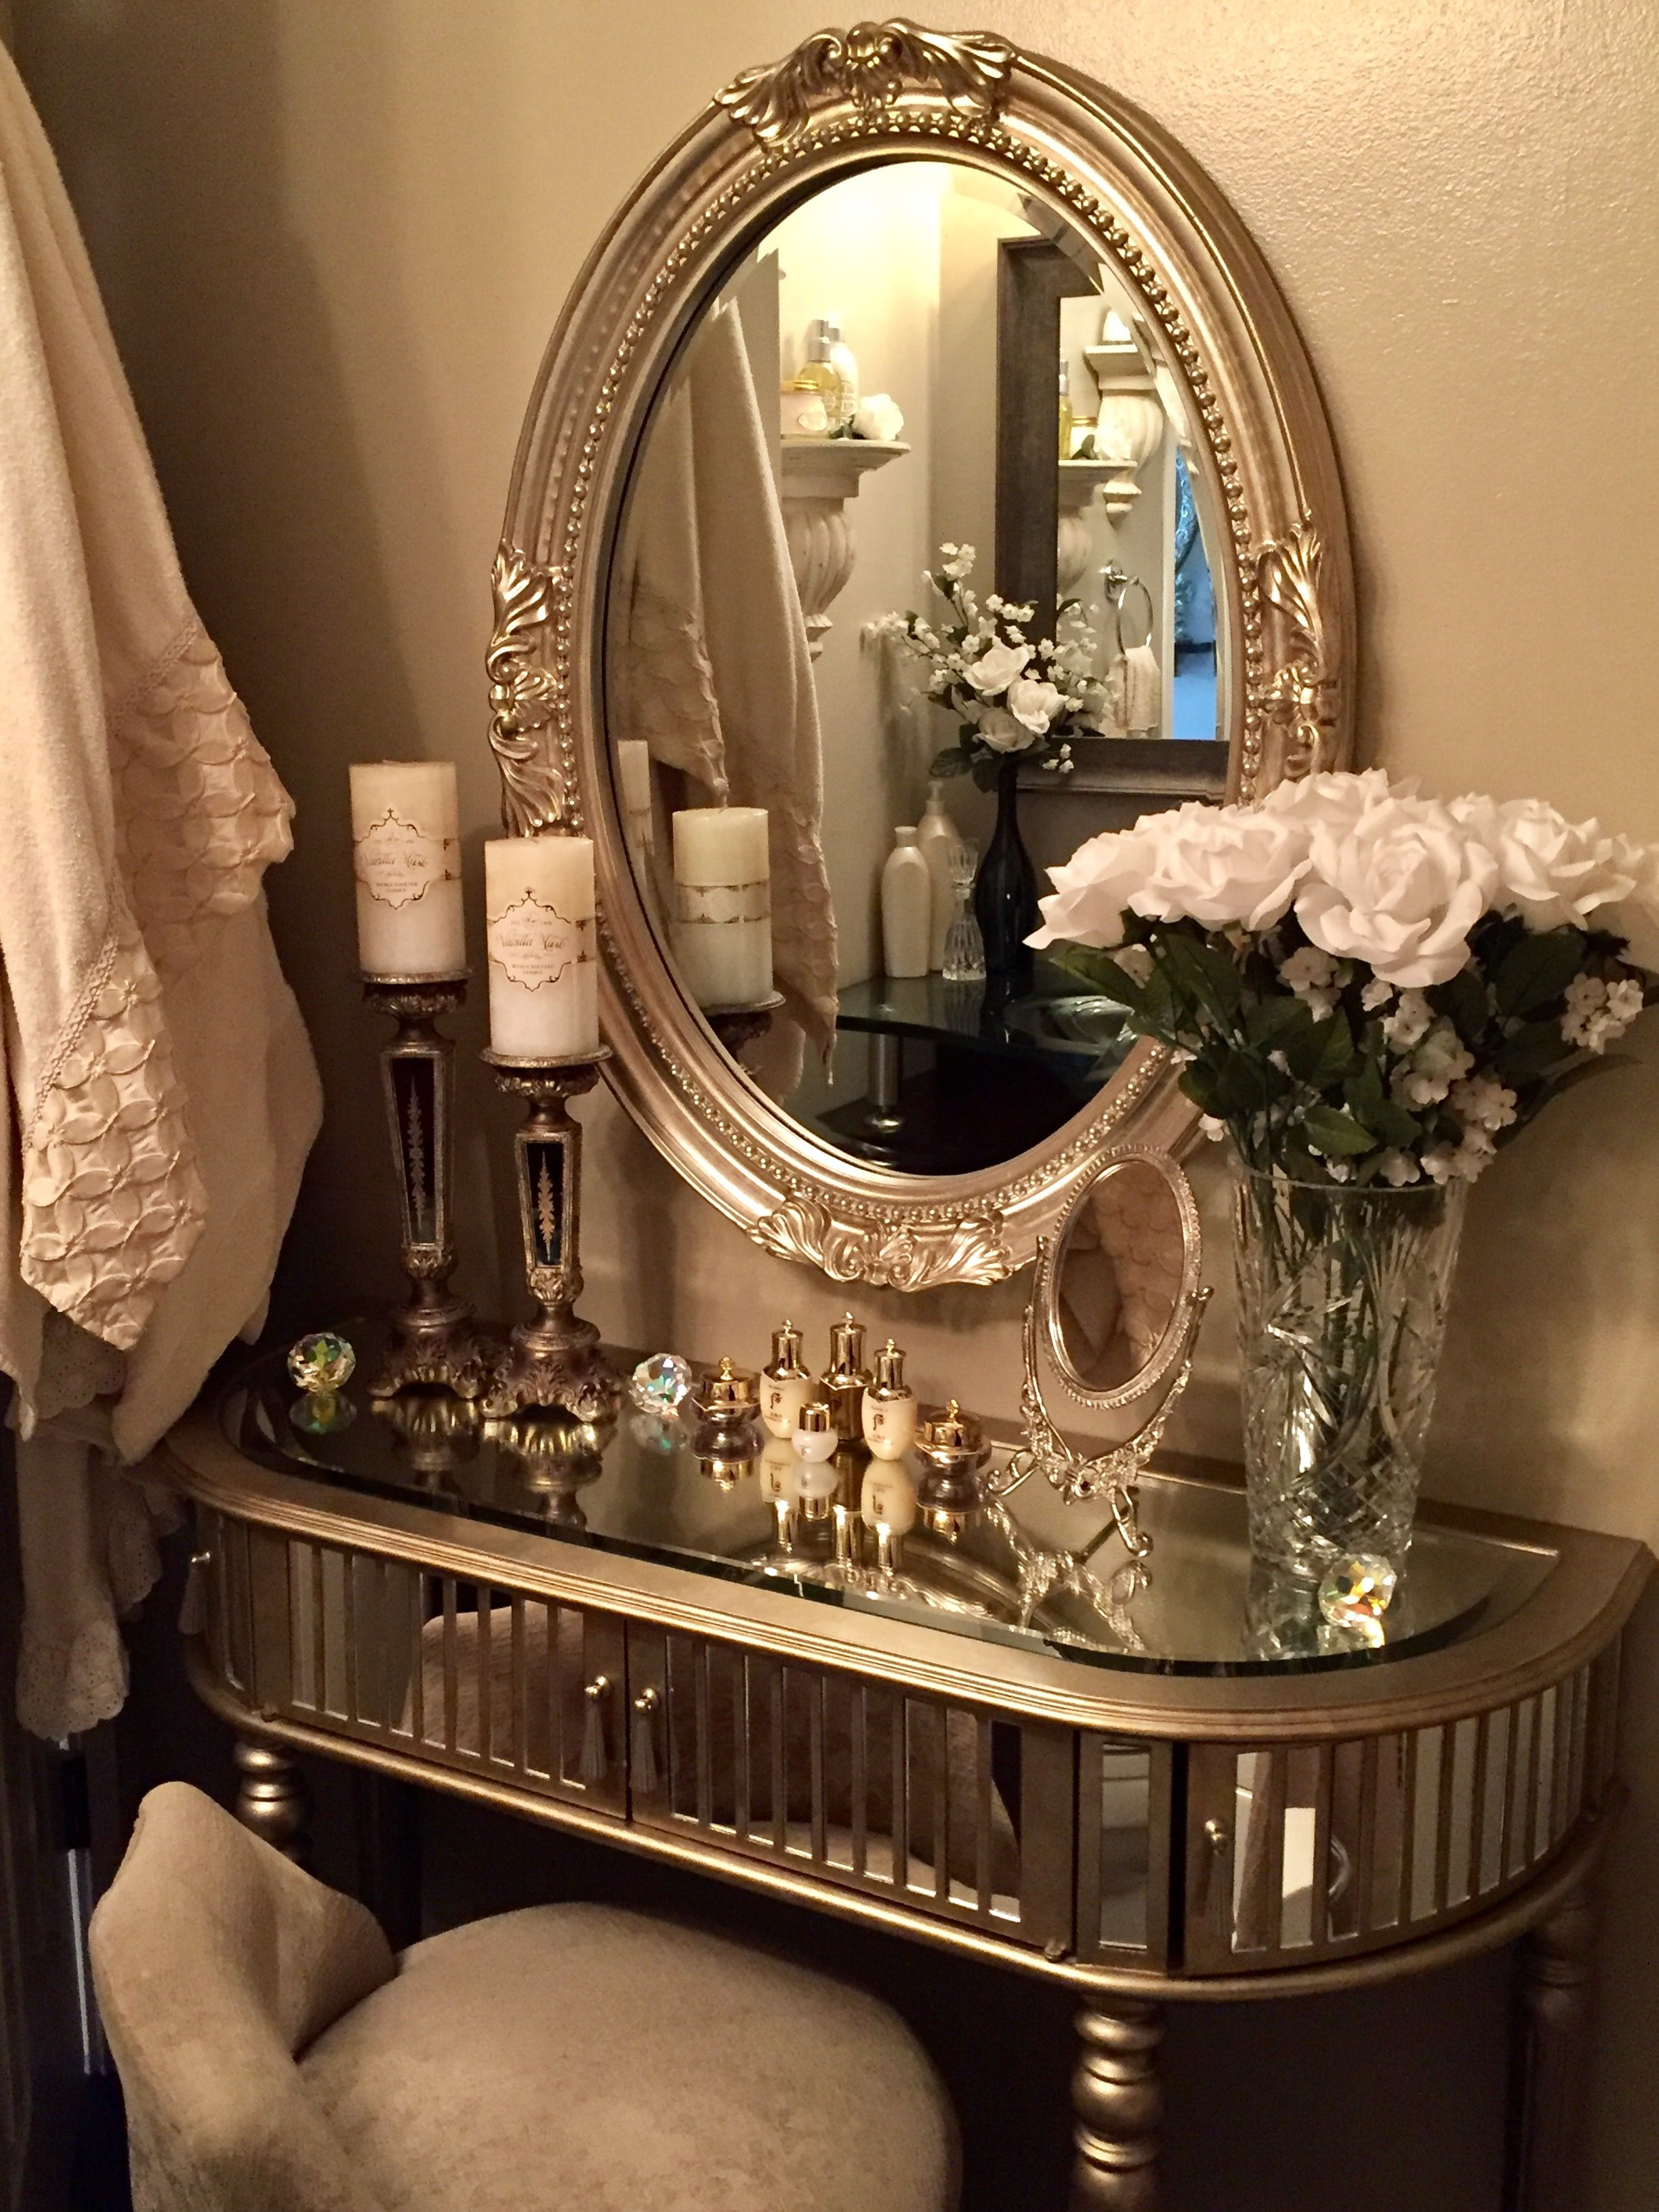 Small bathroom luxury mirrored vanity Elegant vanity